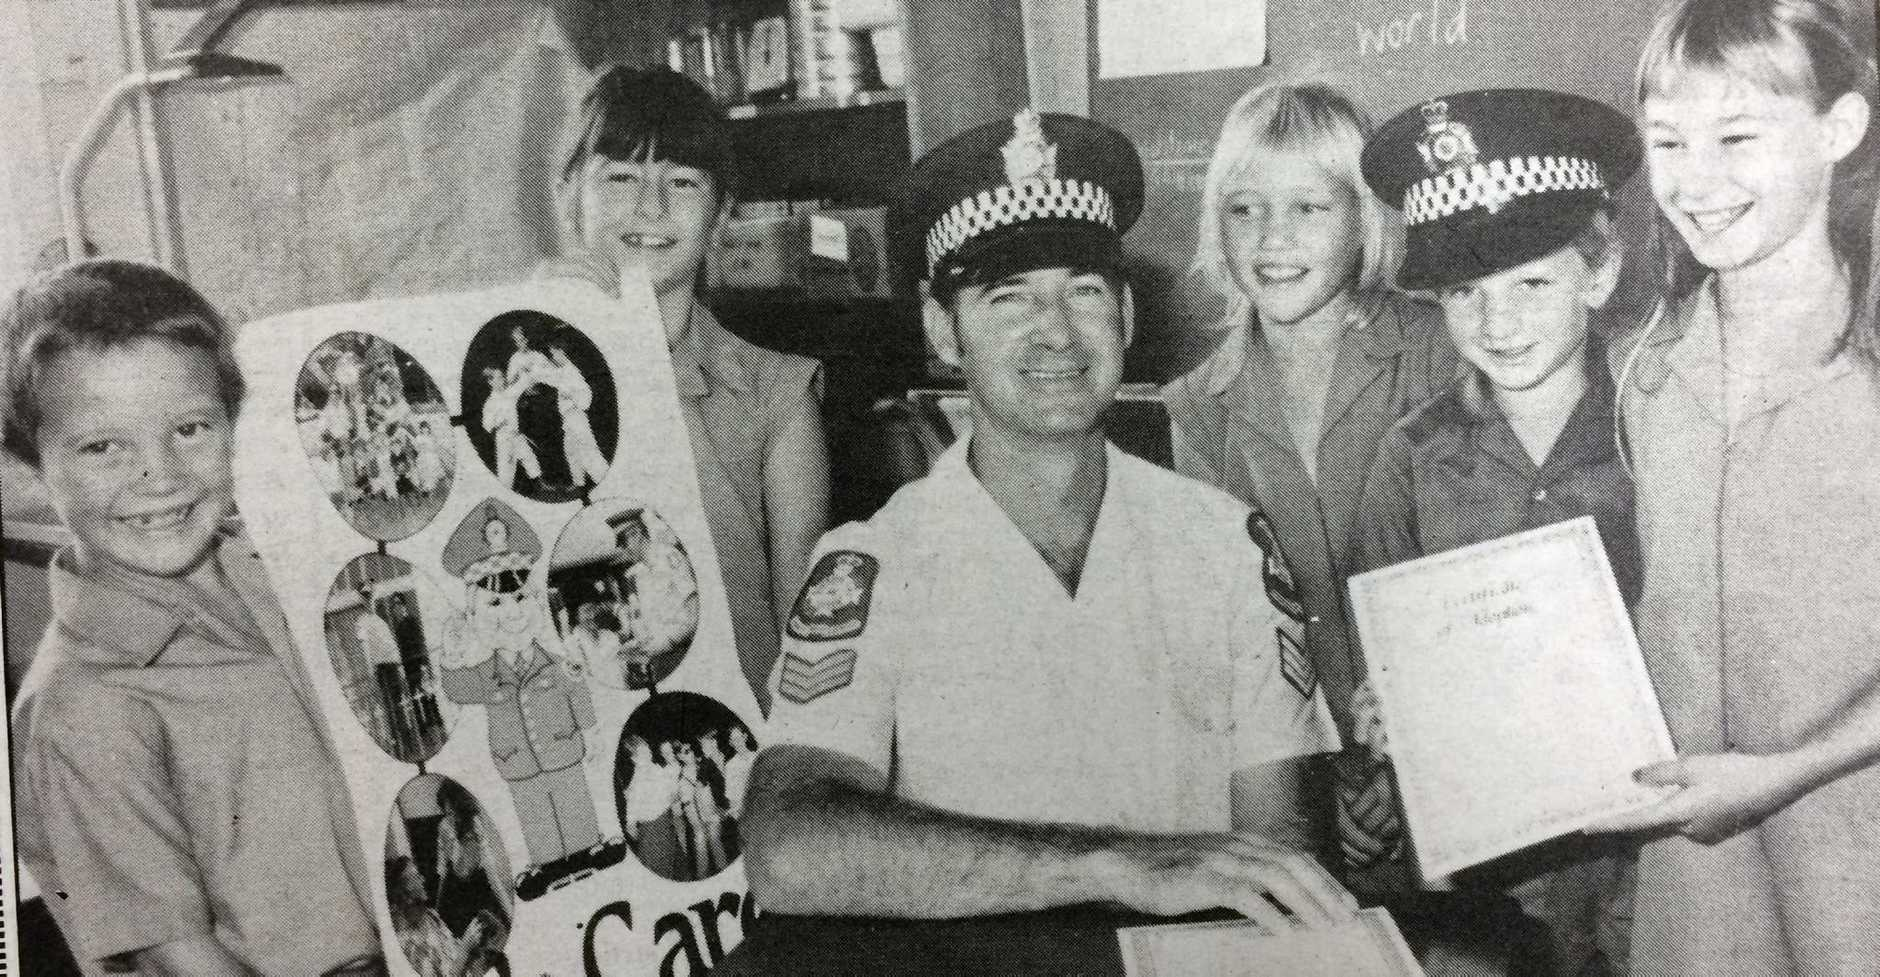 WEDNESDAY, FEBRUARY 22, 1989: Gympie policeman Sgt Steve Seed made friends with Gympie East State School students (from left) Hugh Swingler, Alison Wilson, Deanne Burkhardt, Glenn Mullaly and Karen Seed yesterday when the school adopted Sgt Seed through the adotp-a-cop program.